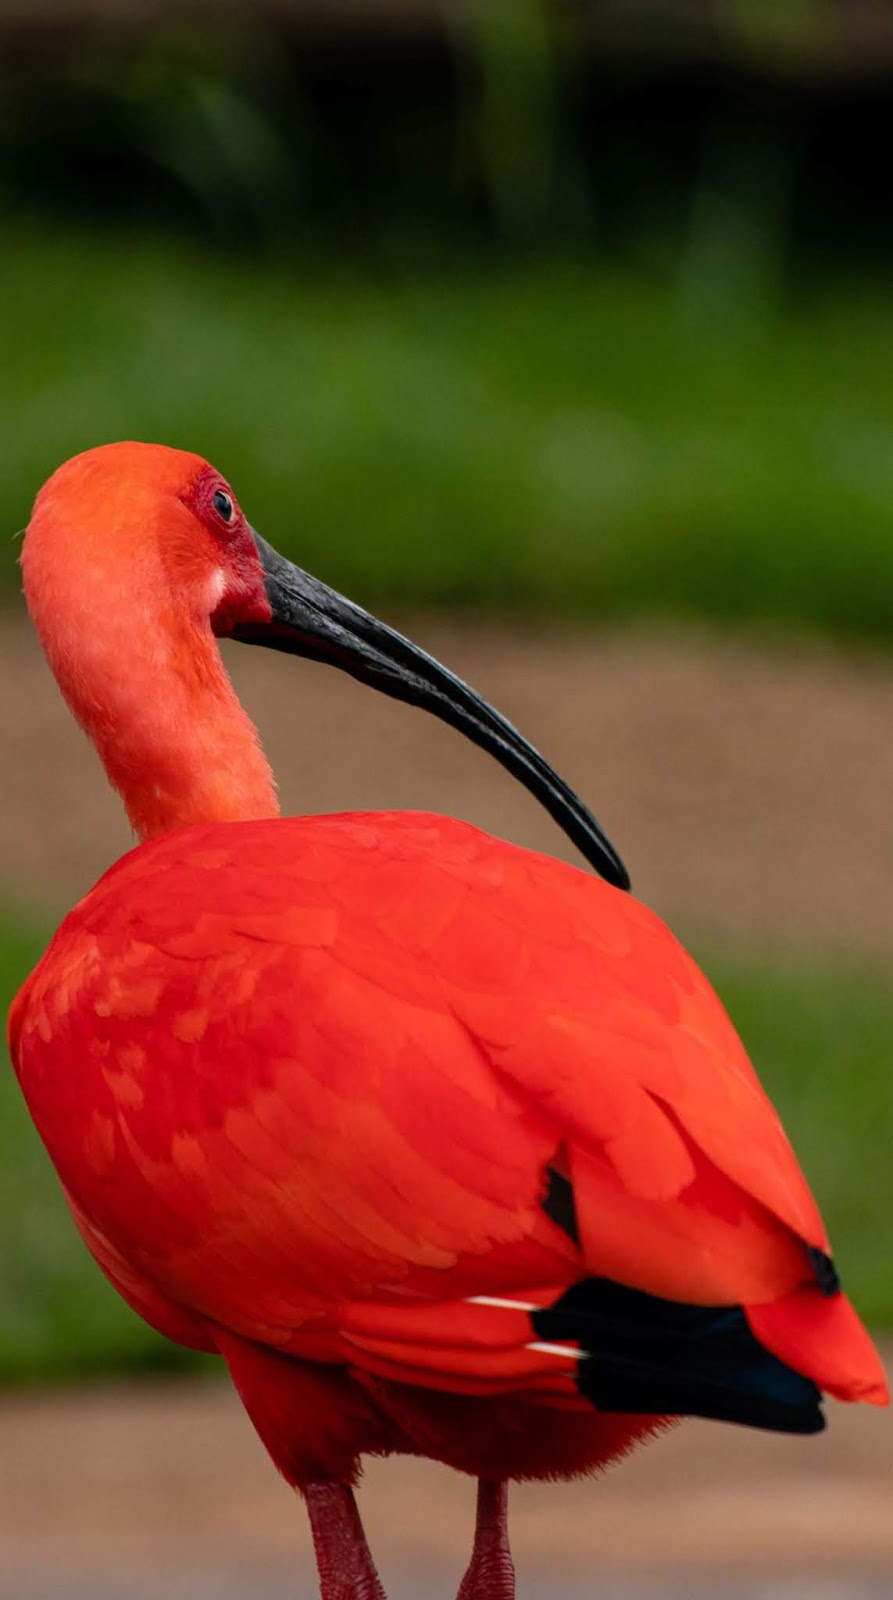 Picture of a scarlet ibis.